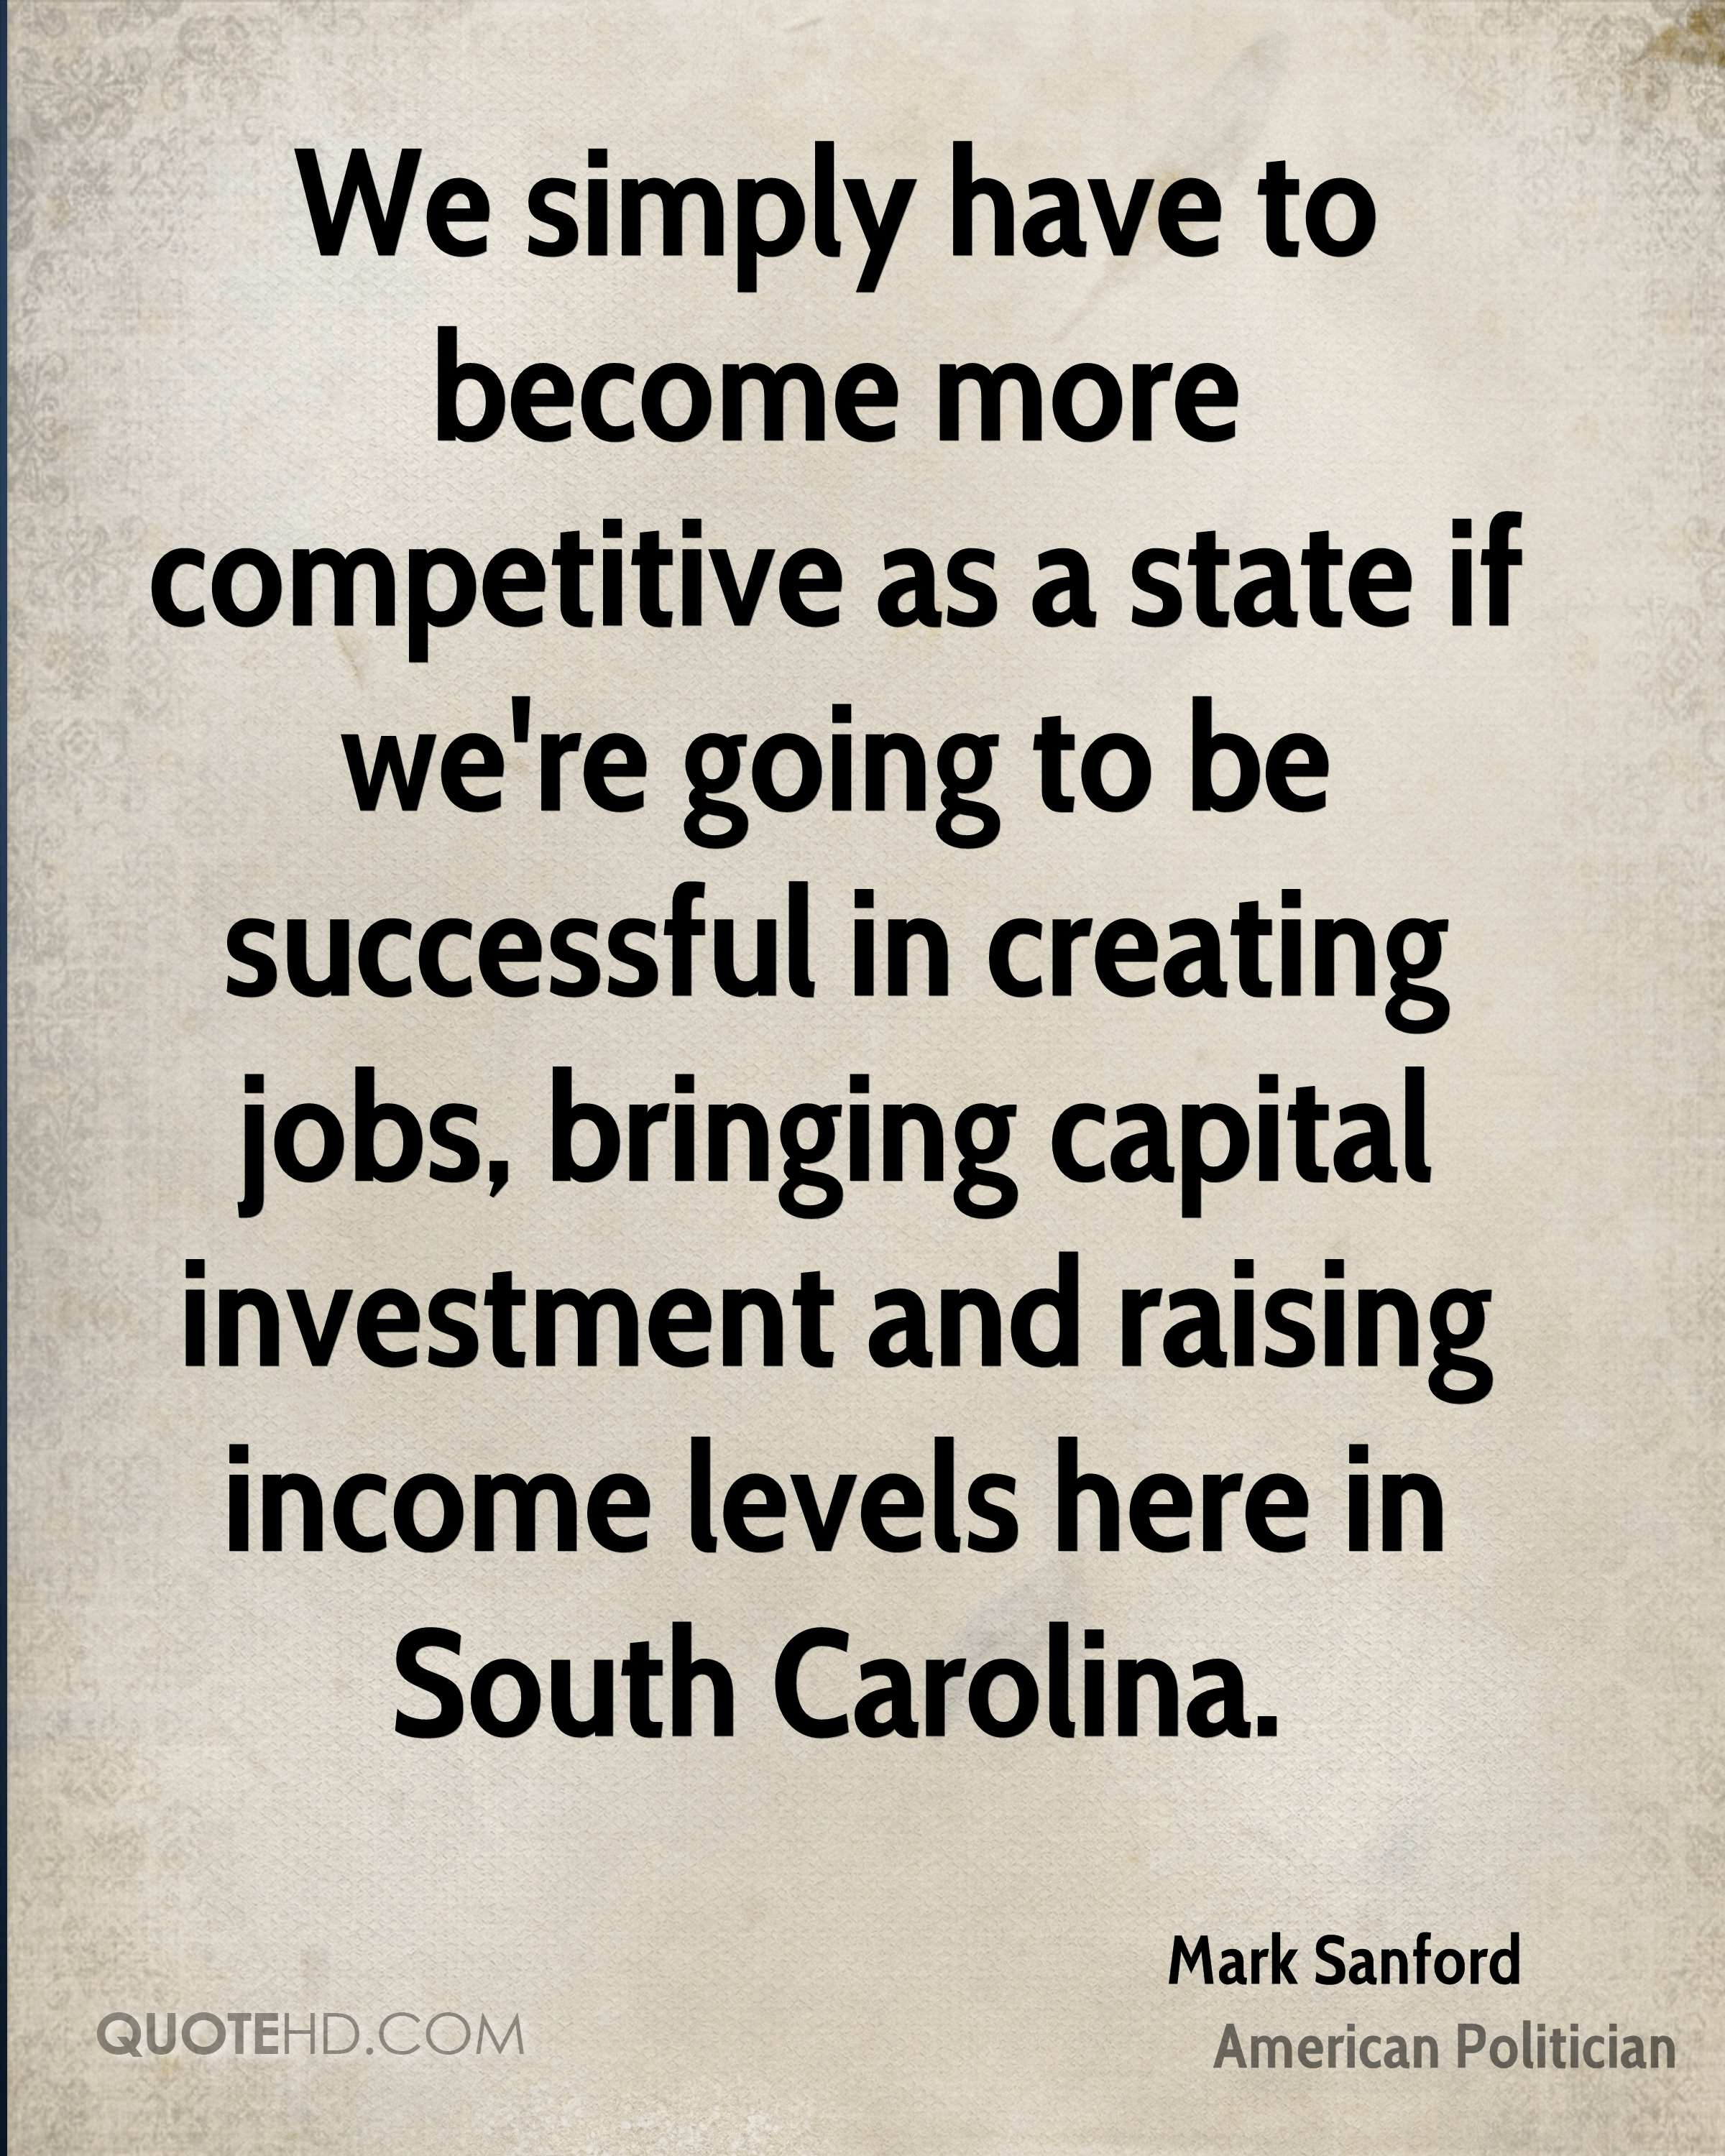 We simply have to become more competitive as a state if we're going to be successful in creating jobs, bringing capital investment and raising income levels here in South Carolina.